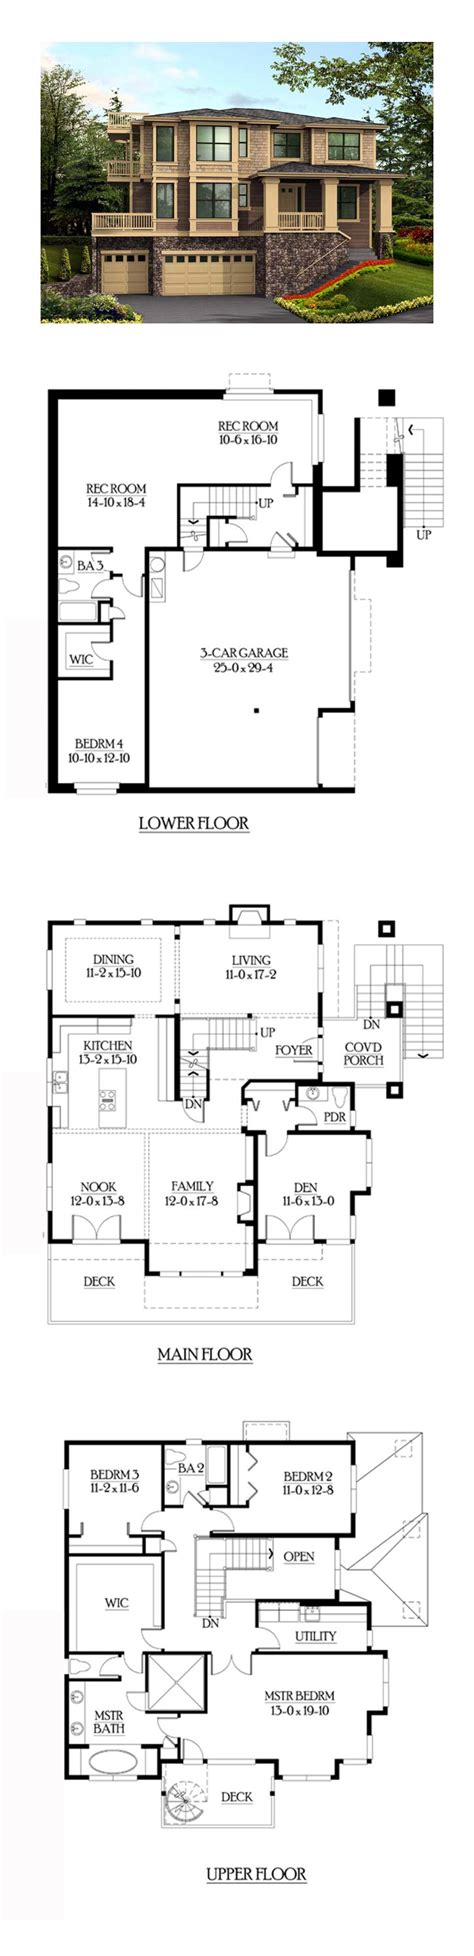 house plans with basements best 25 basement house plans ideas on basement floor plans house layouts and